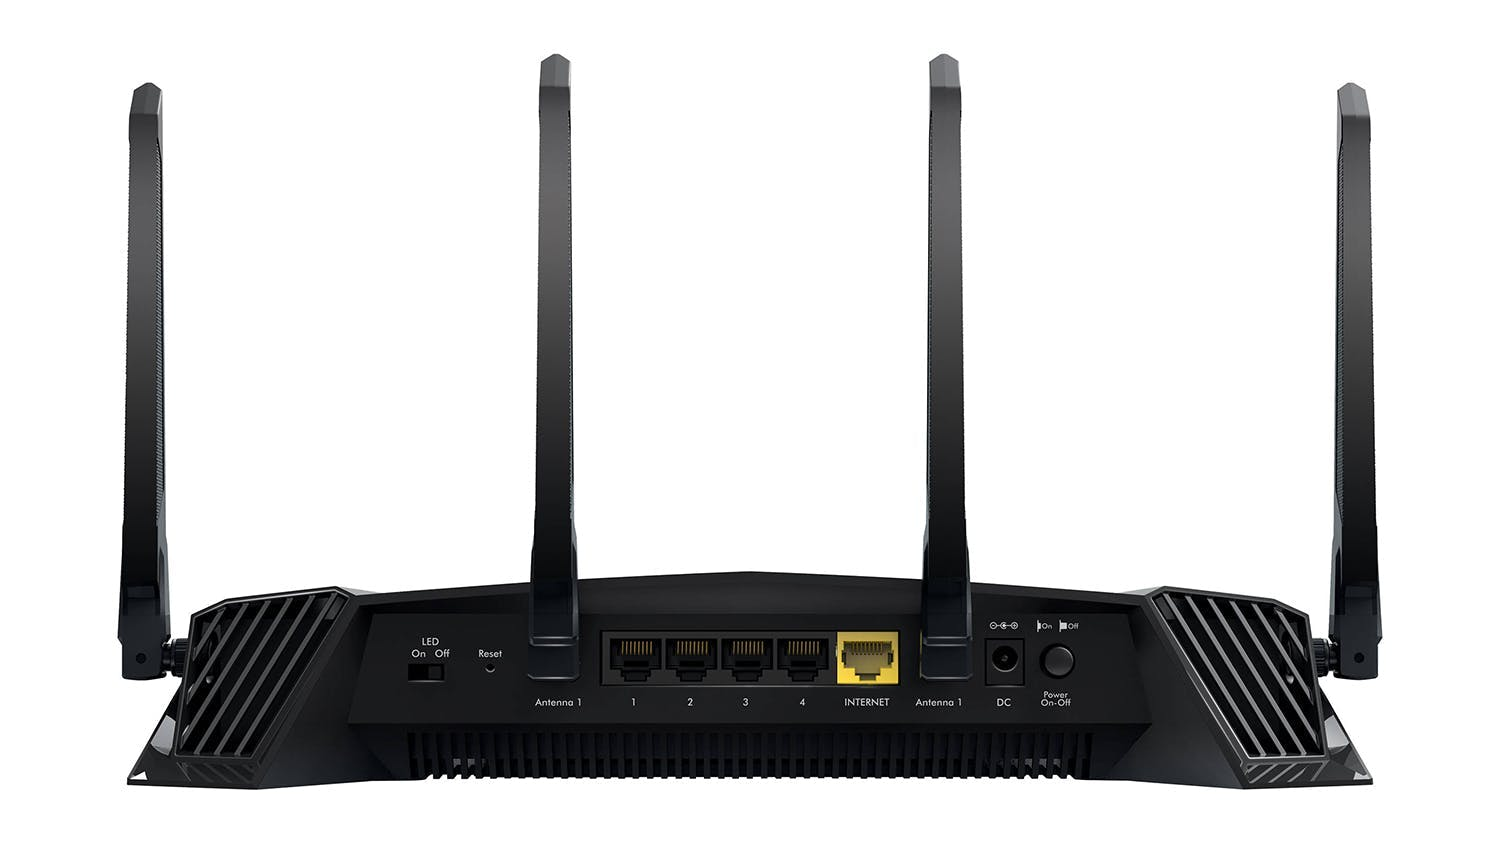 Netgear XR500 Nighthawk AC2600 Pro Gaming Wi-Fi Router